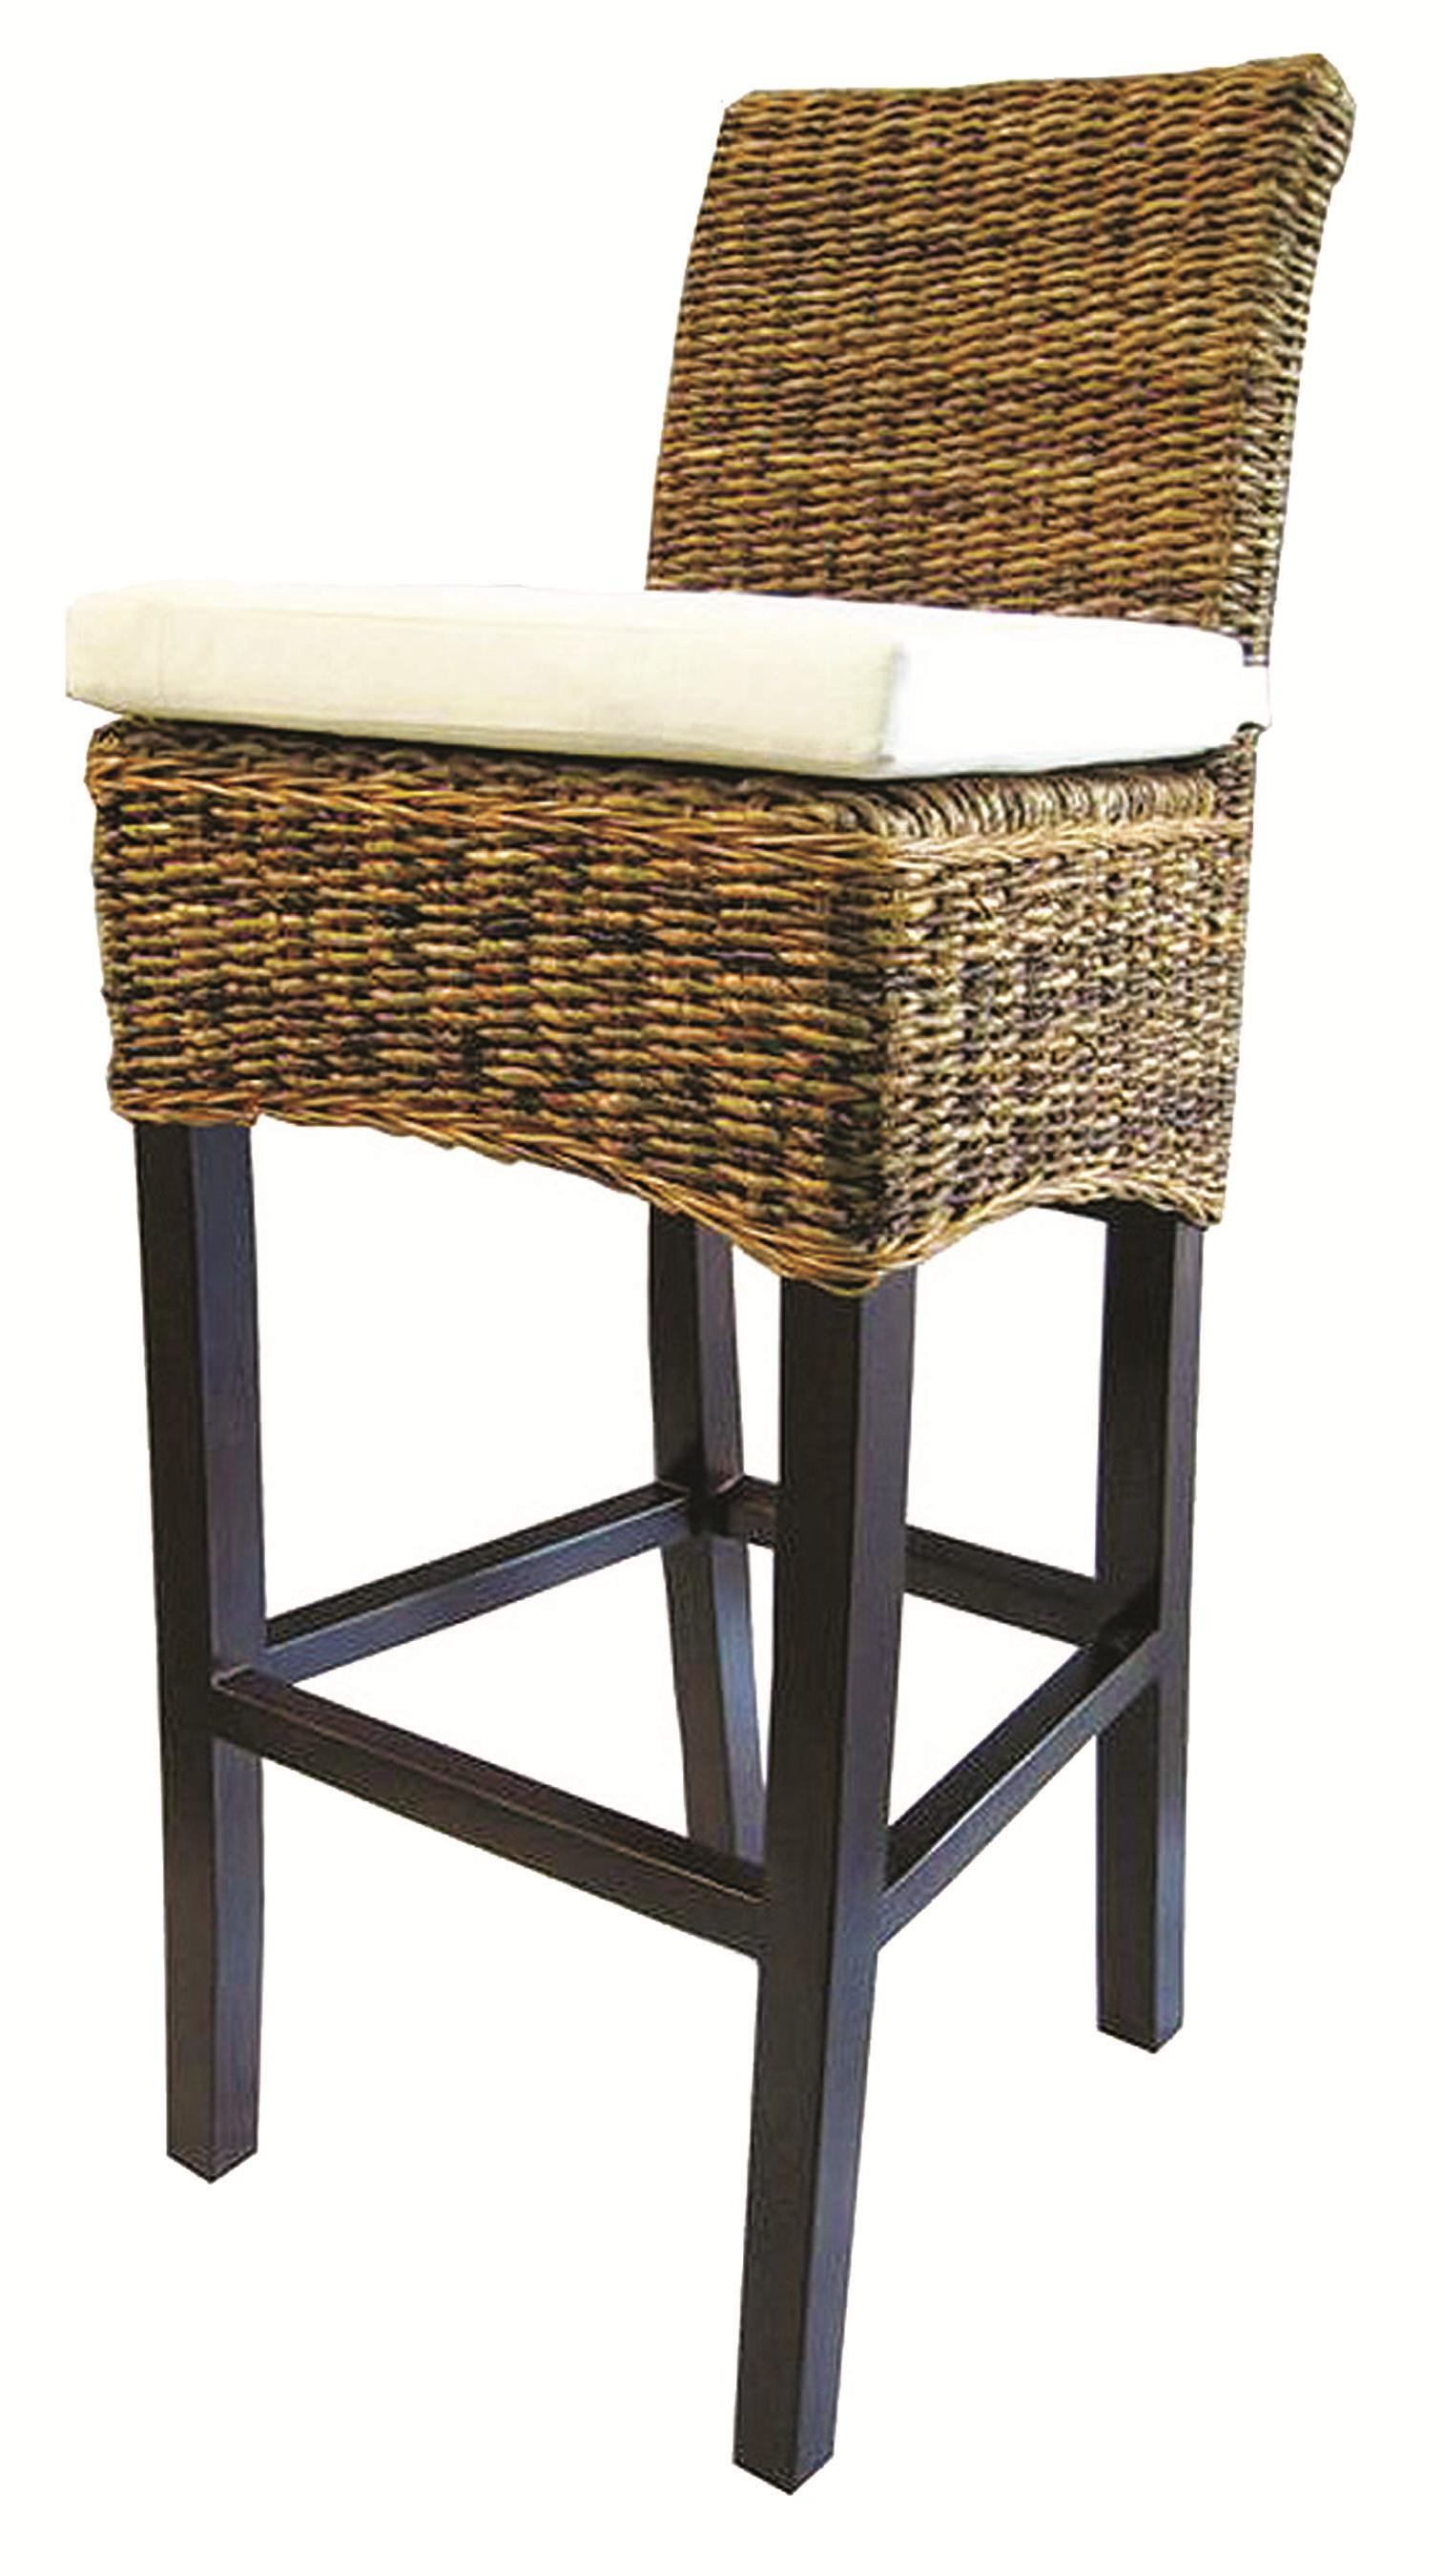 Four Hands Grass Roots Banana Leaf Barstool - Item Number JCHR-B1BS  sc 1 st  Belfort Furniture & Four Hands Grass Roots Woven Banana Leaf Barstool w/ Canvas ... islam-shia.org